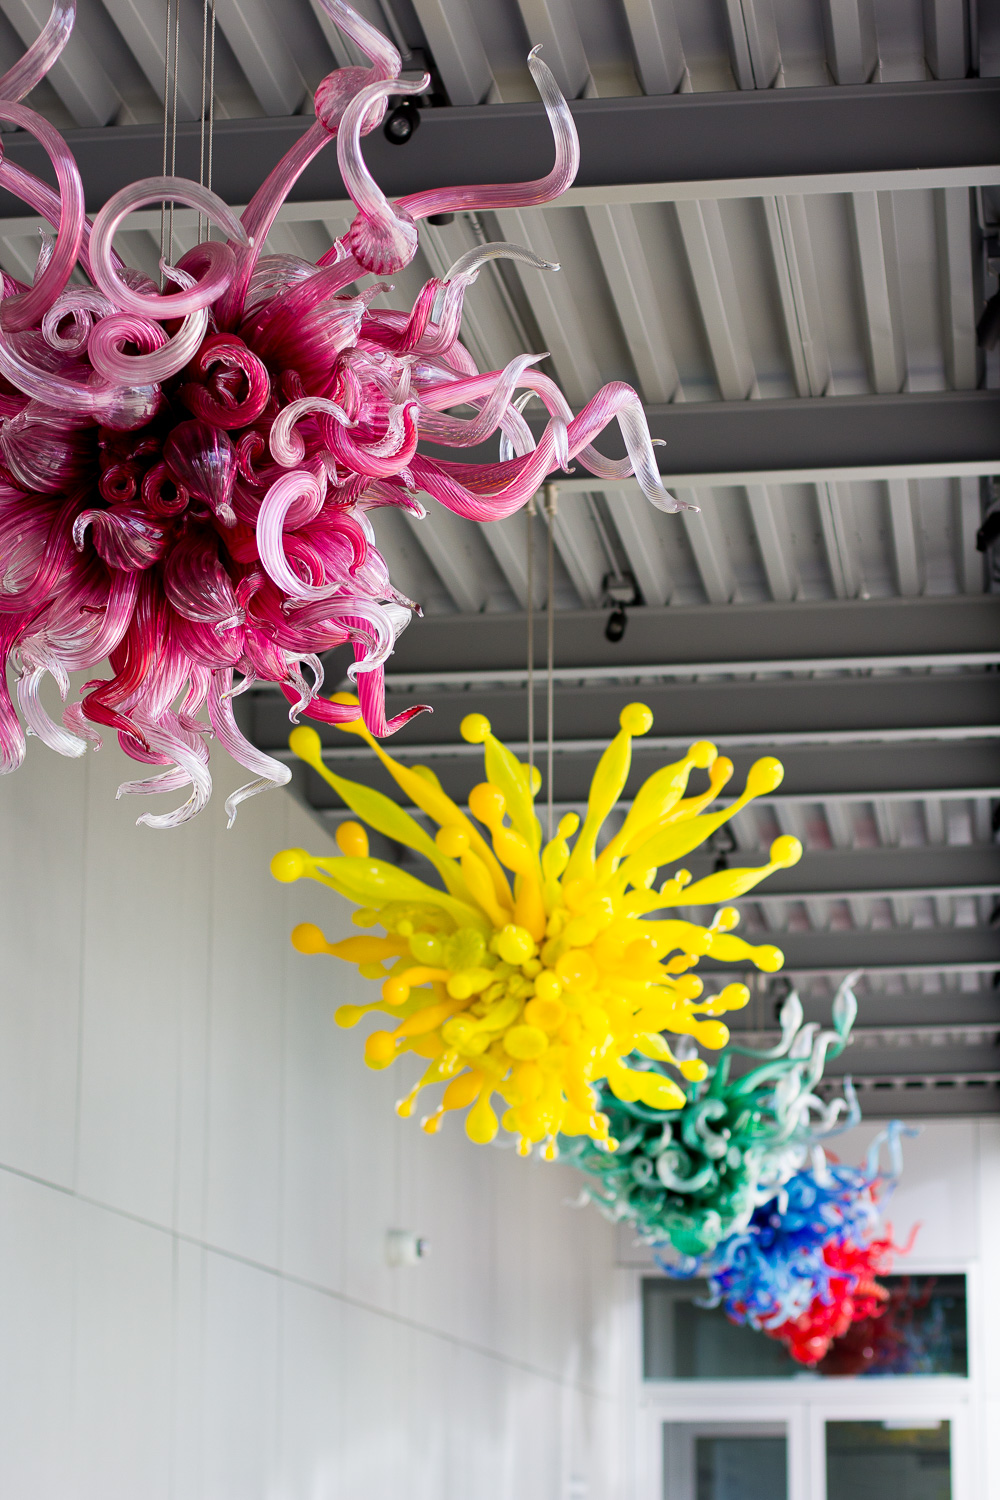 what to do in seattle, trip to seattle, chihuly garden and glass,  wandeleur, things to do in seattle, dale chihuly exhibit seattle